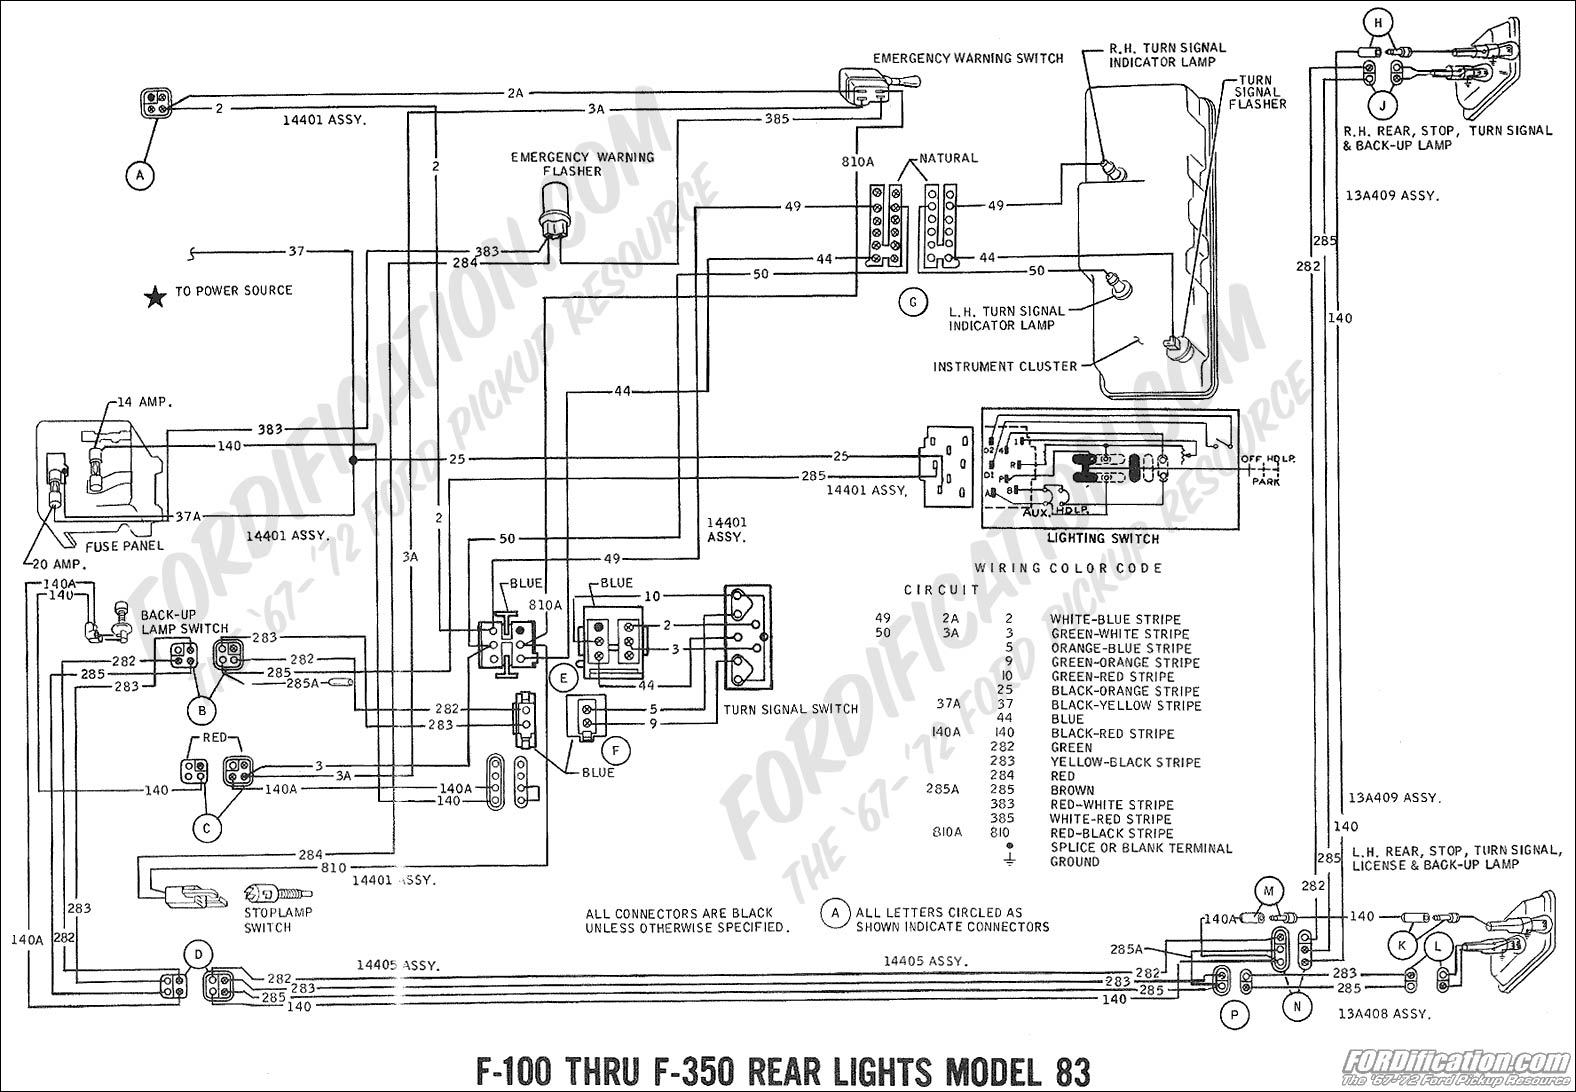 557082 Brake Light Problem further Rt 1273 Technical Diagrams Archives likewise Schematics i in addition Schematics b additionally Schematics i. on 1964 ford mustang wiring